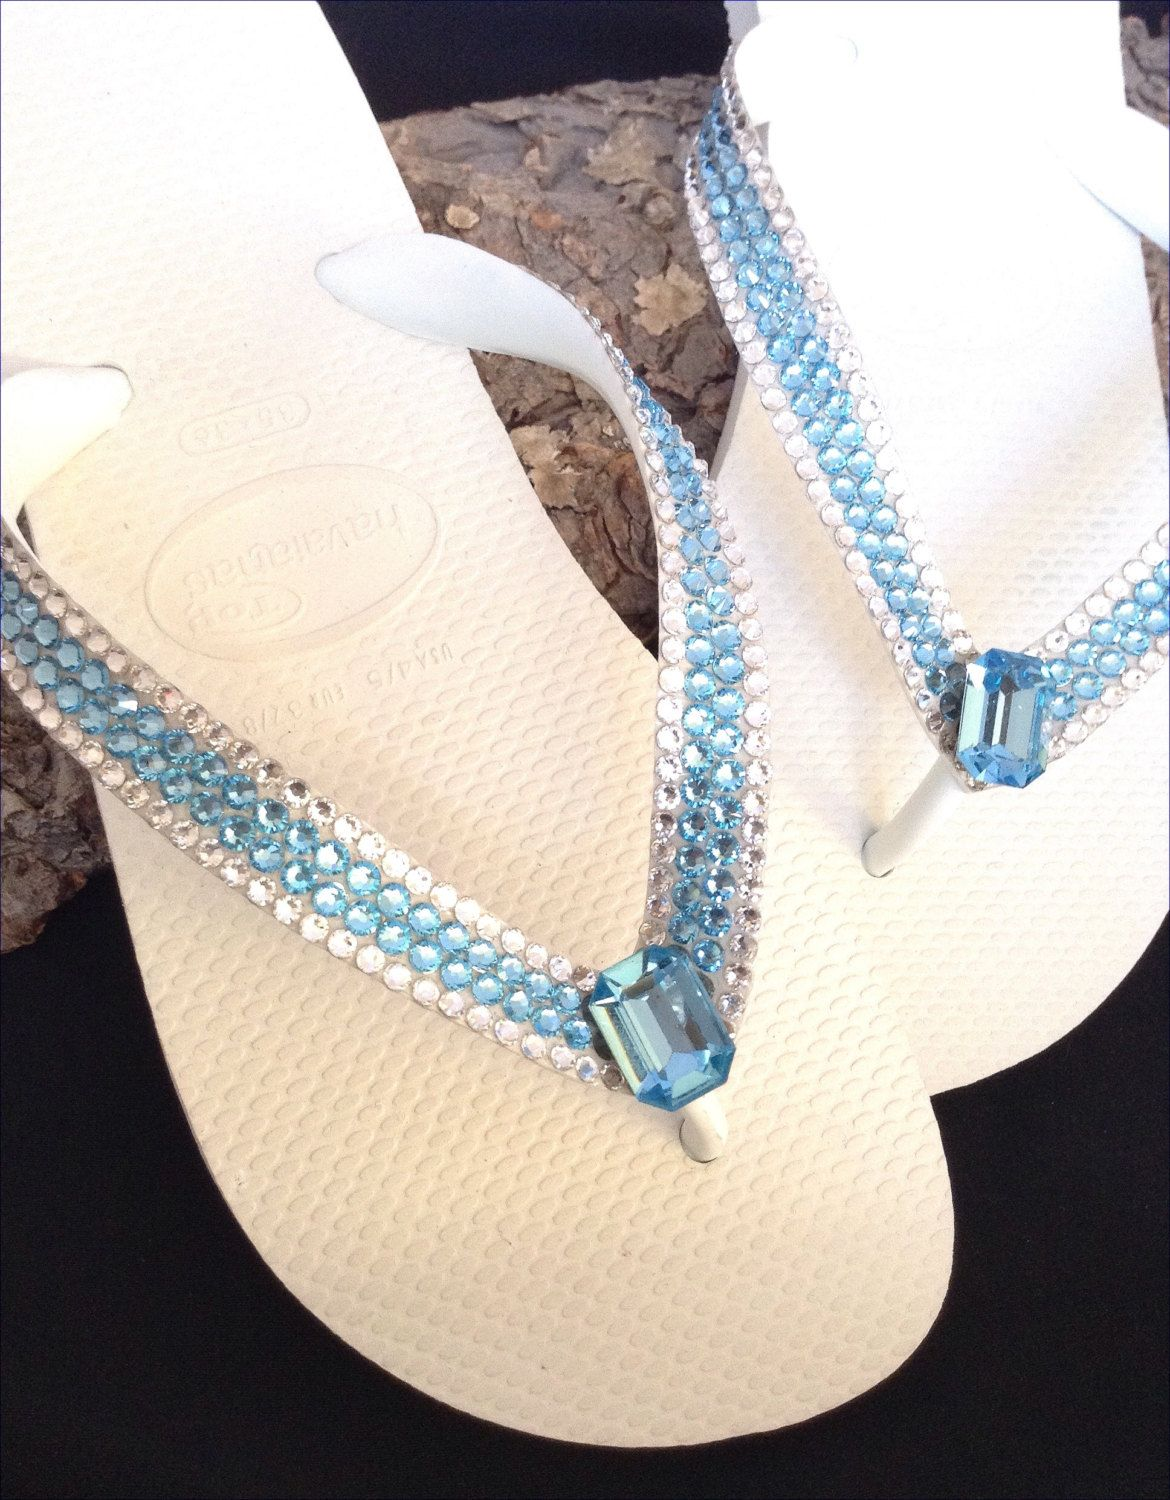 ff94d696d High Society Aquamarine Blue Rocks Swarovski Custom CRYSTAL Flip Flops  Havaianas or Cariris Beach Thong Sandals Shoes by GlassSlippersCC on Etsy